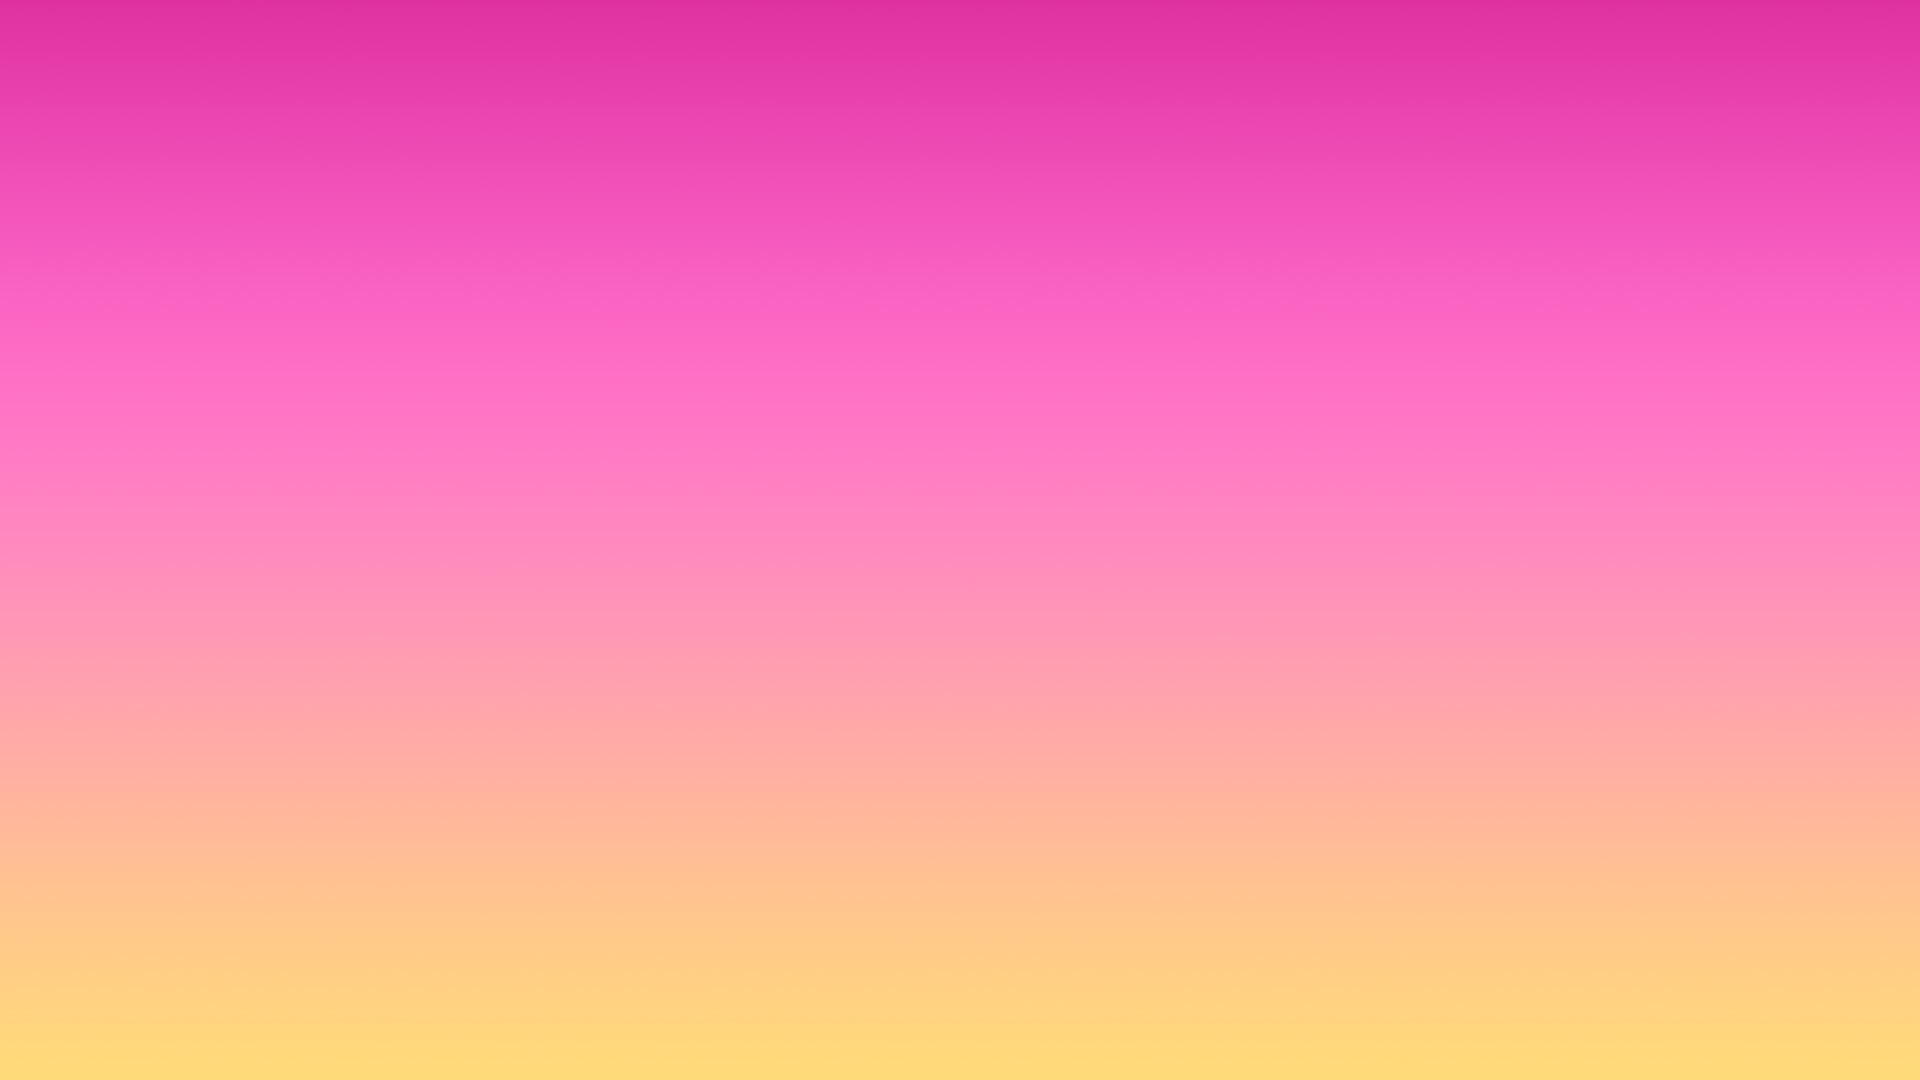 pink-yellow-Gradient-Background